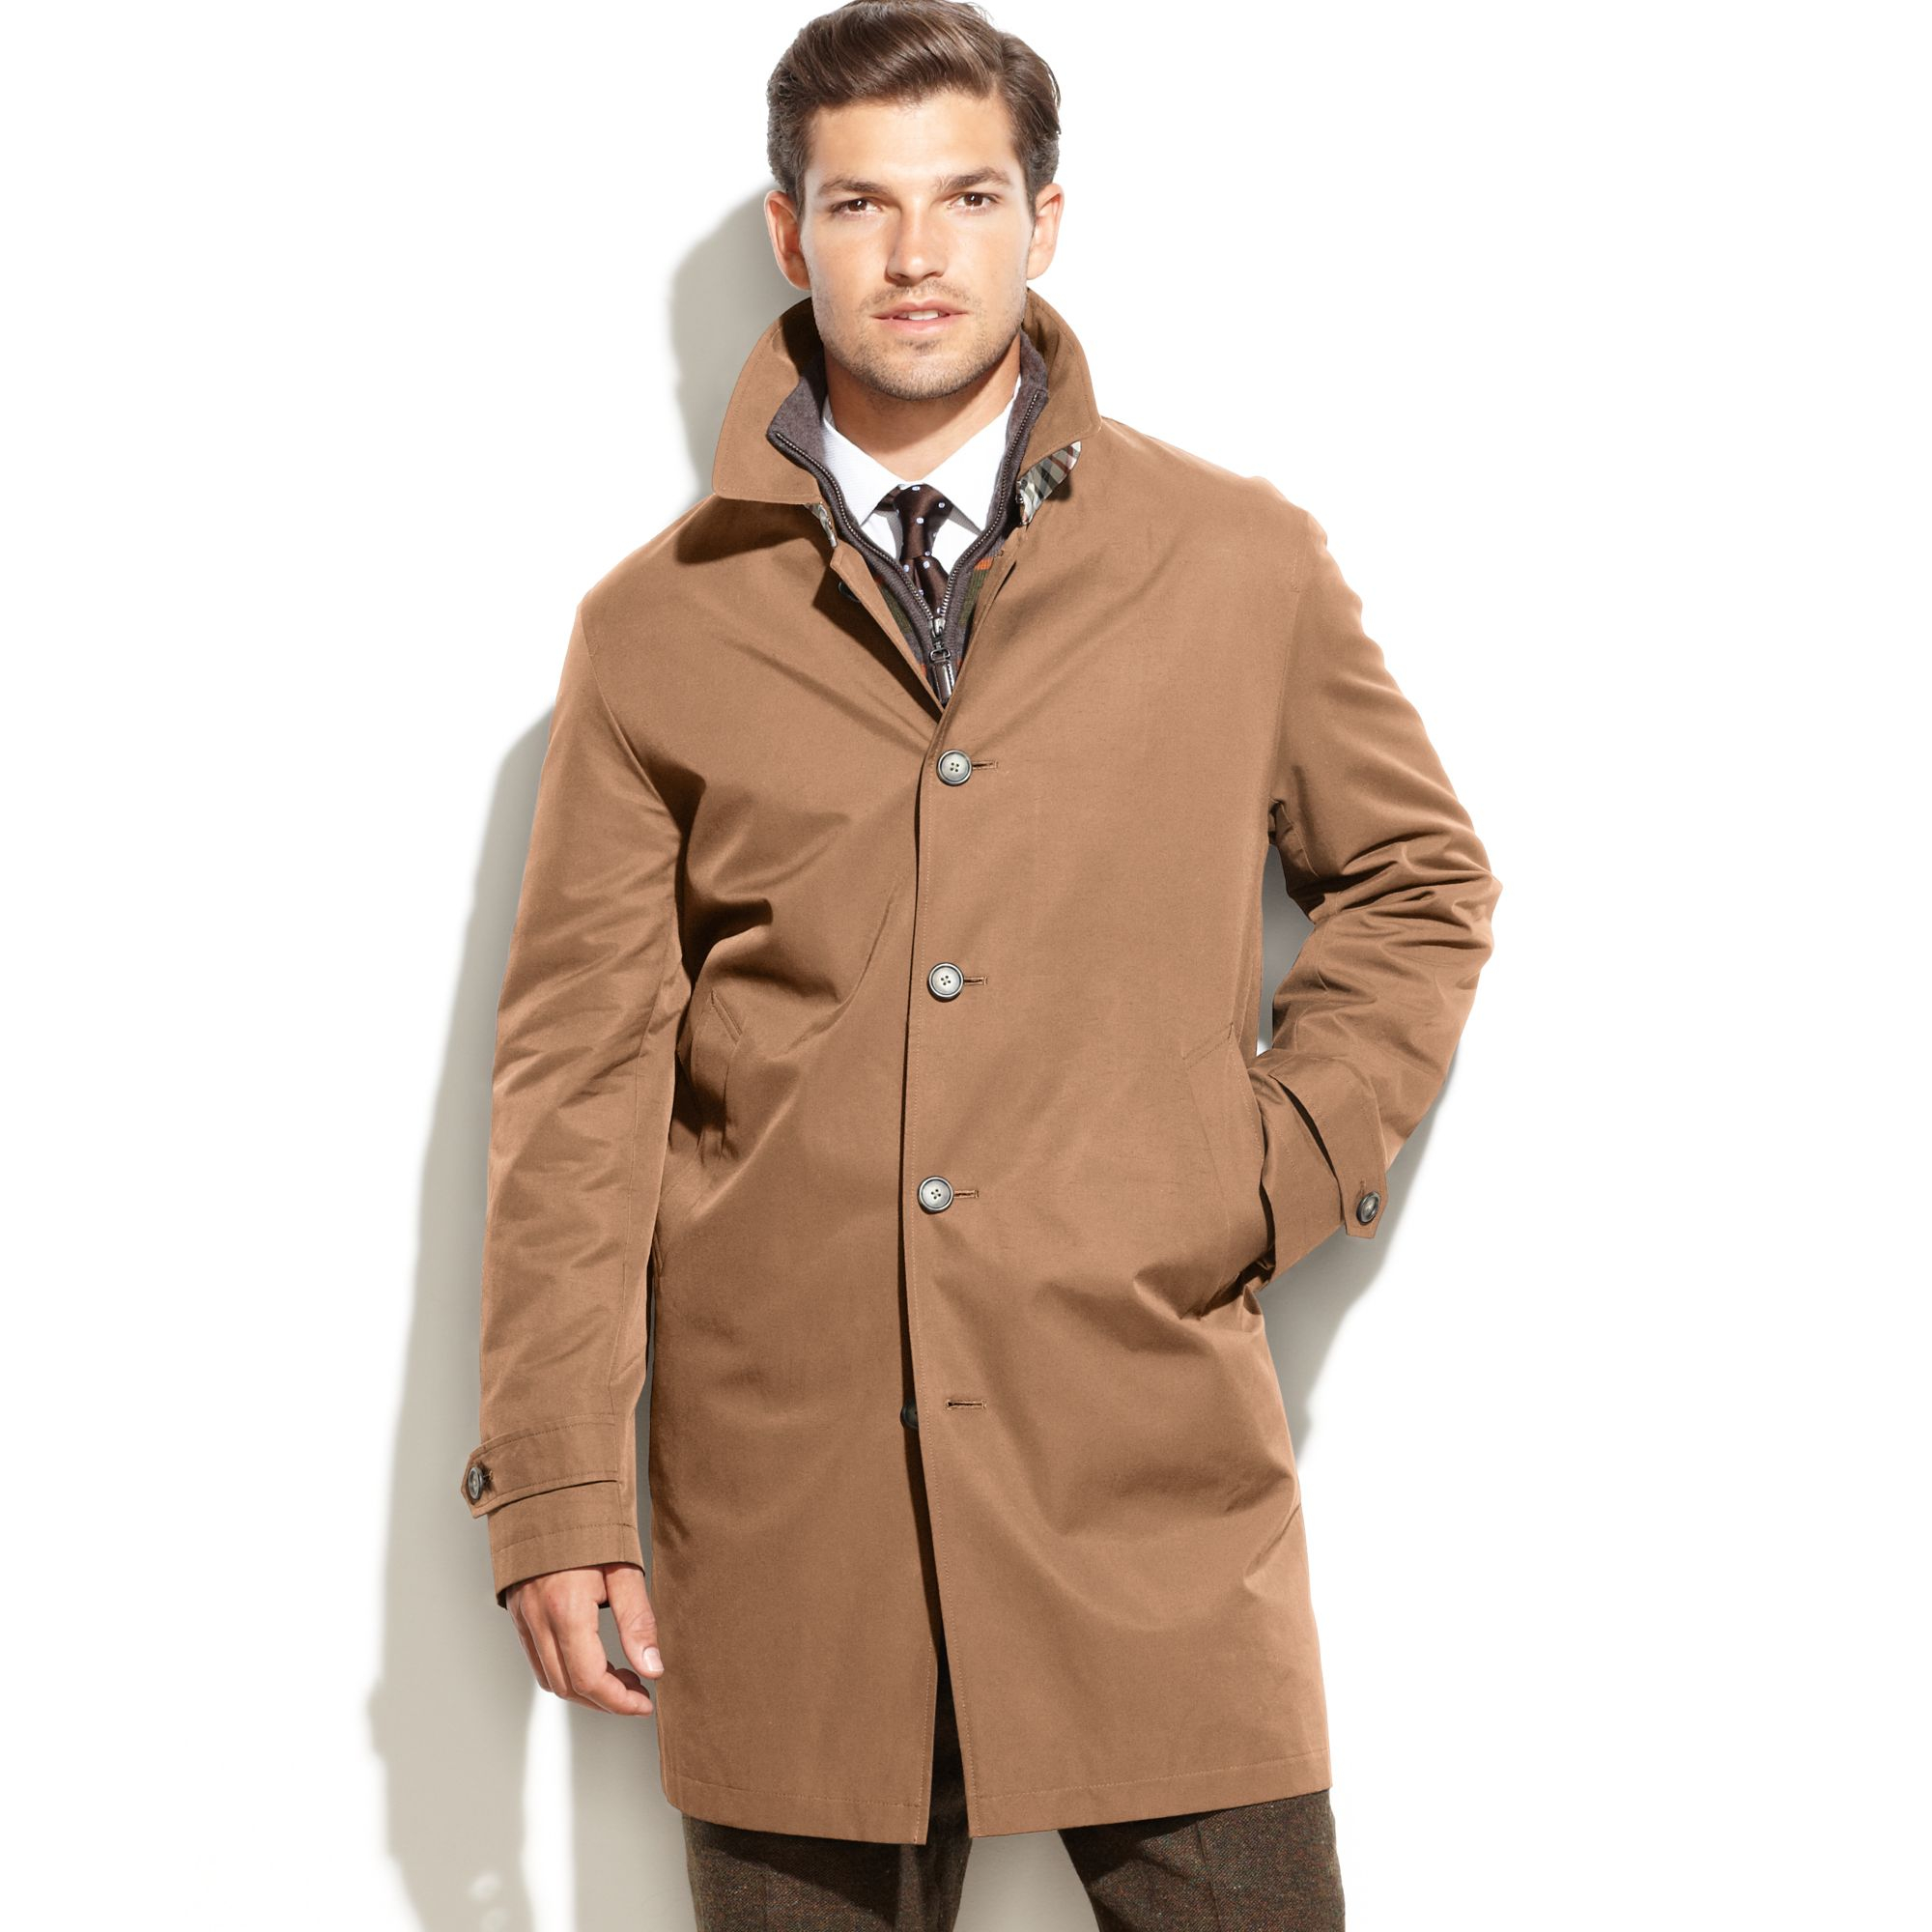 Tommy Hilfiger Lann Raincoat In Tan Brown For Men Lyst